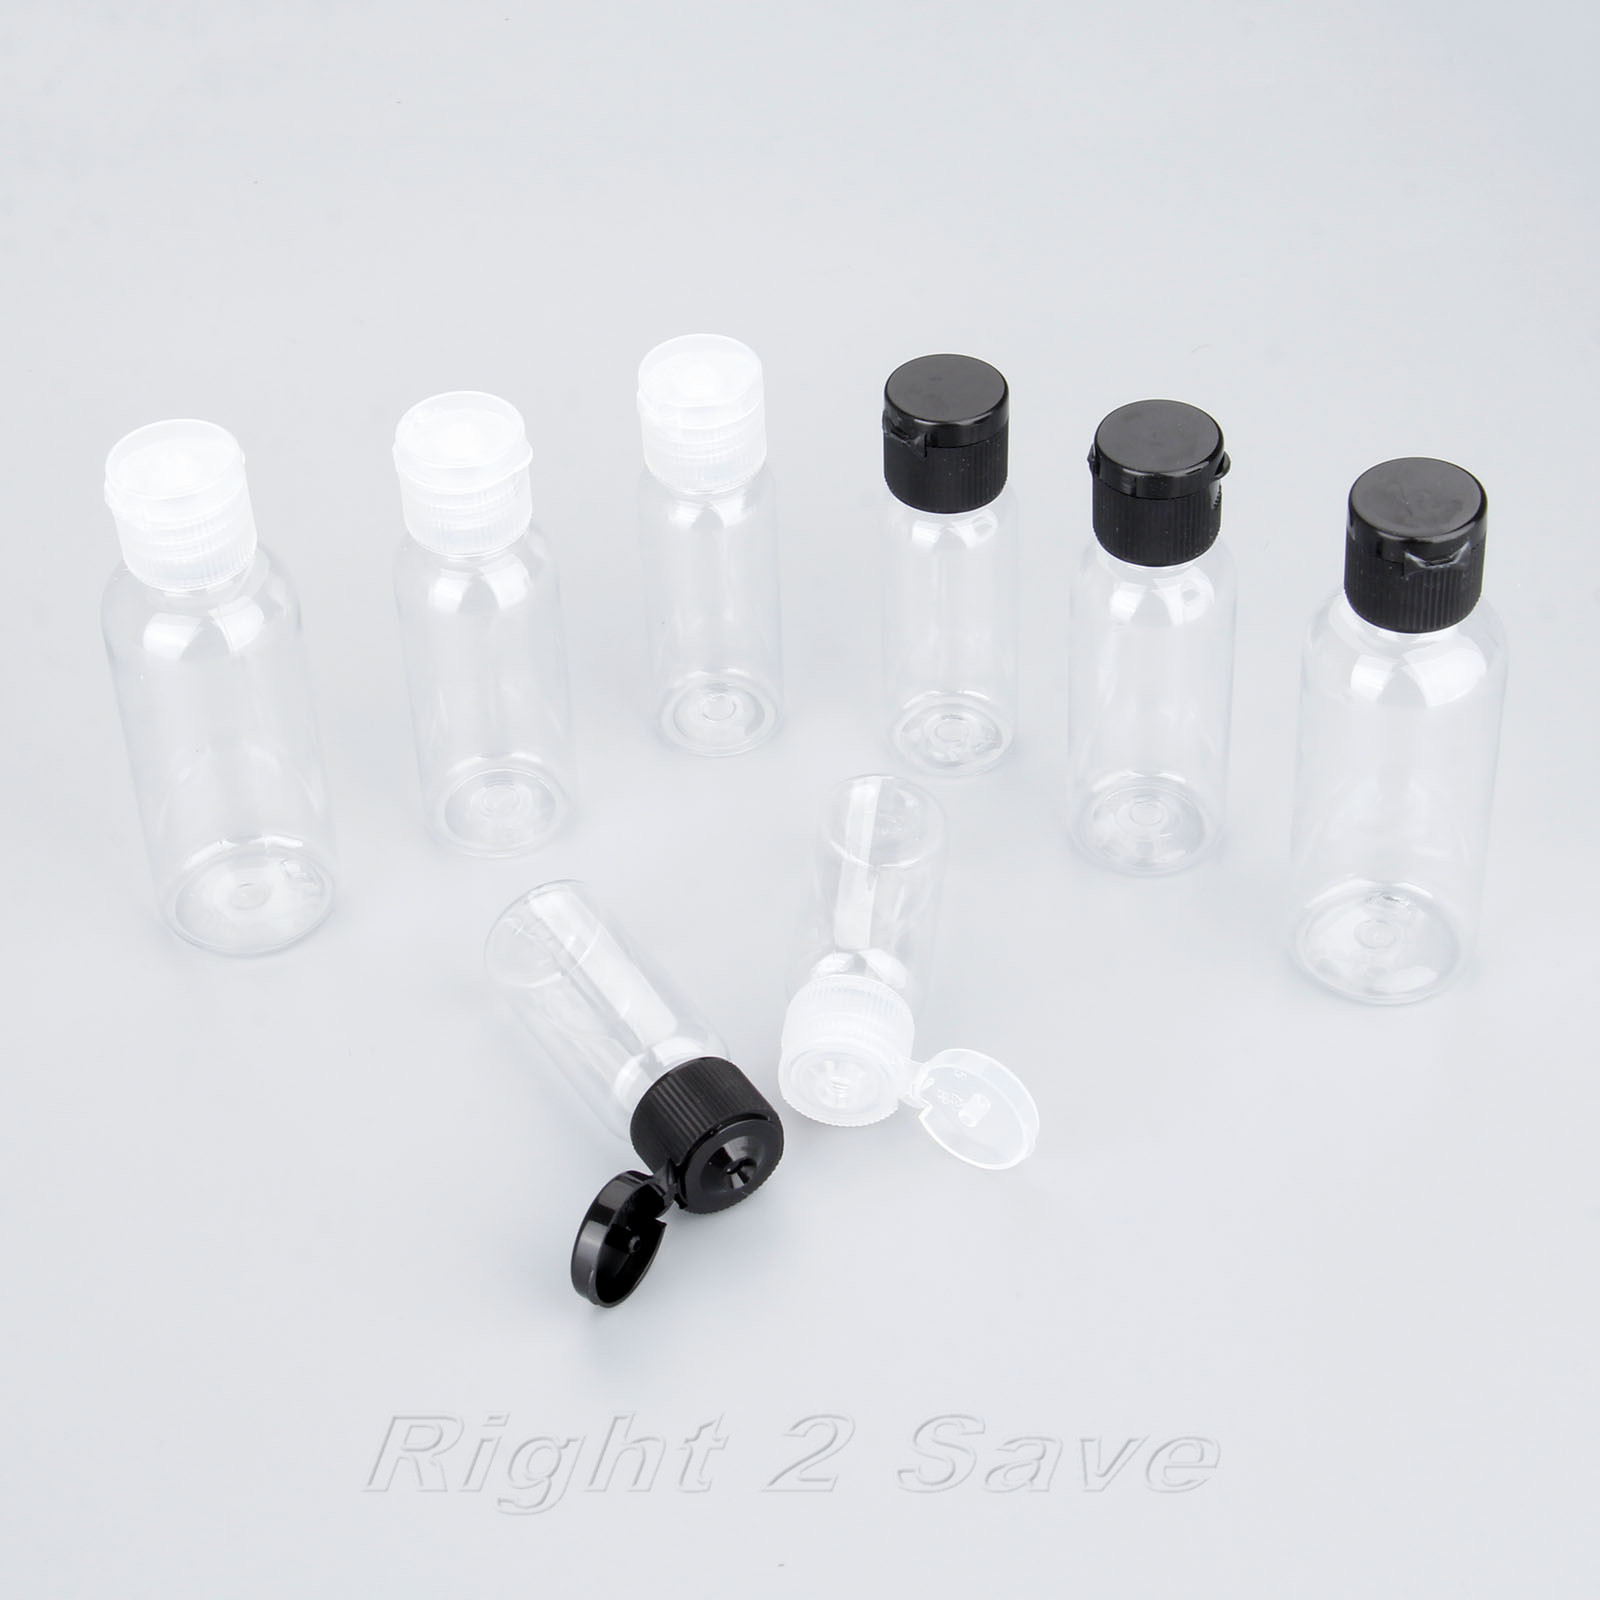 5PCS Bottles Empty Cosmetic Containers Transparent Portable Plastic Perfume Makeup Water 15/20/30/50 ML Clamshell Caps Beauty 1l food grade plastic glasswares chemical reagent bottle pet empty cosmetic containers 10pc large sample bottle food containers